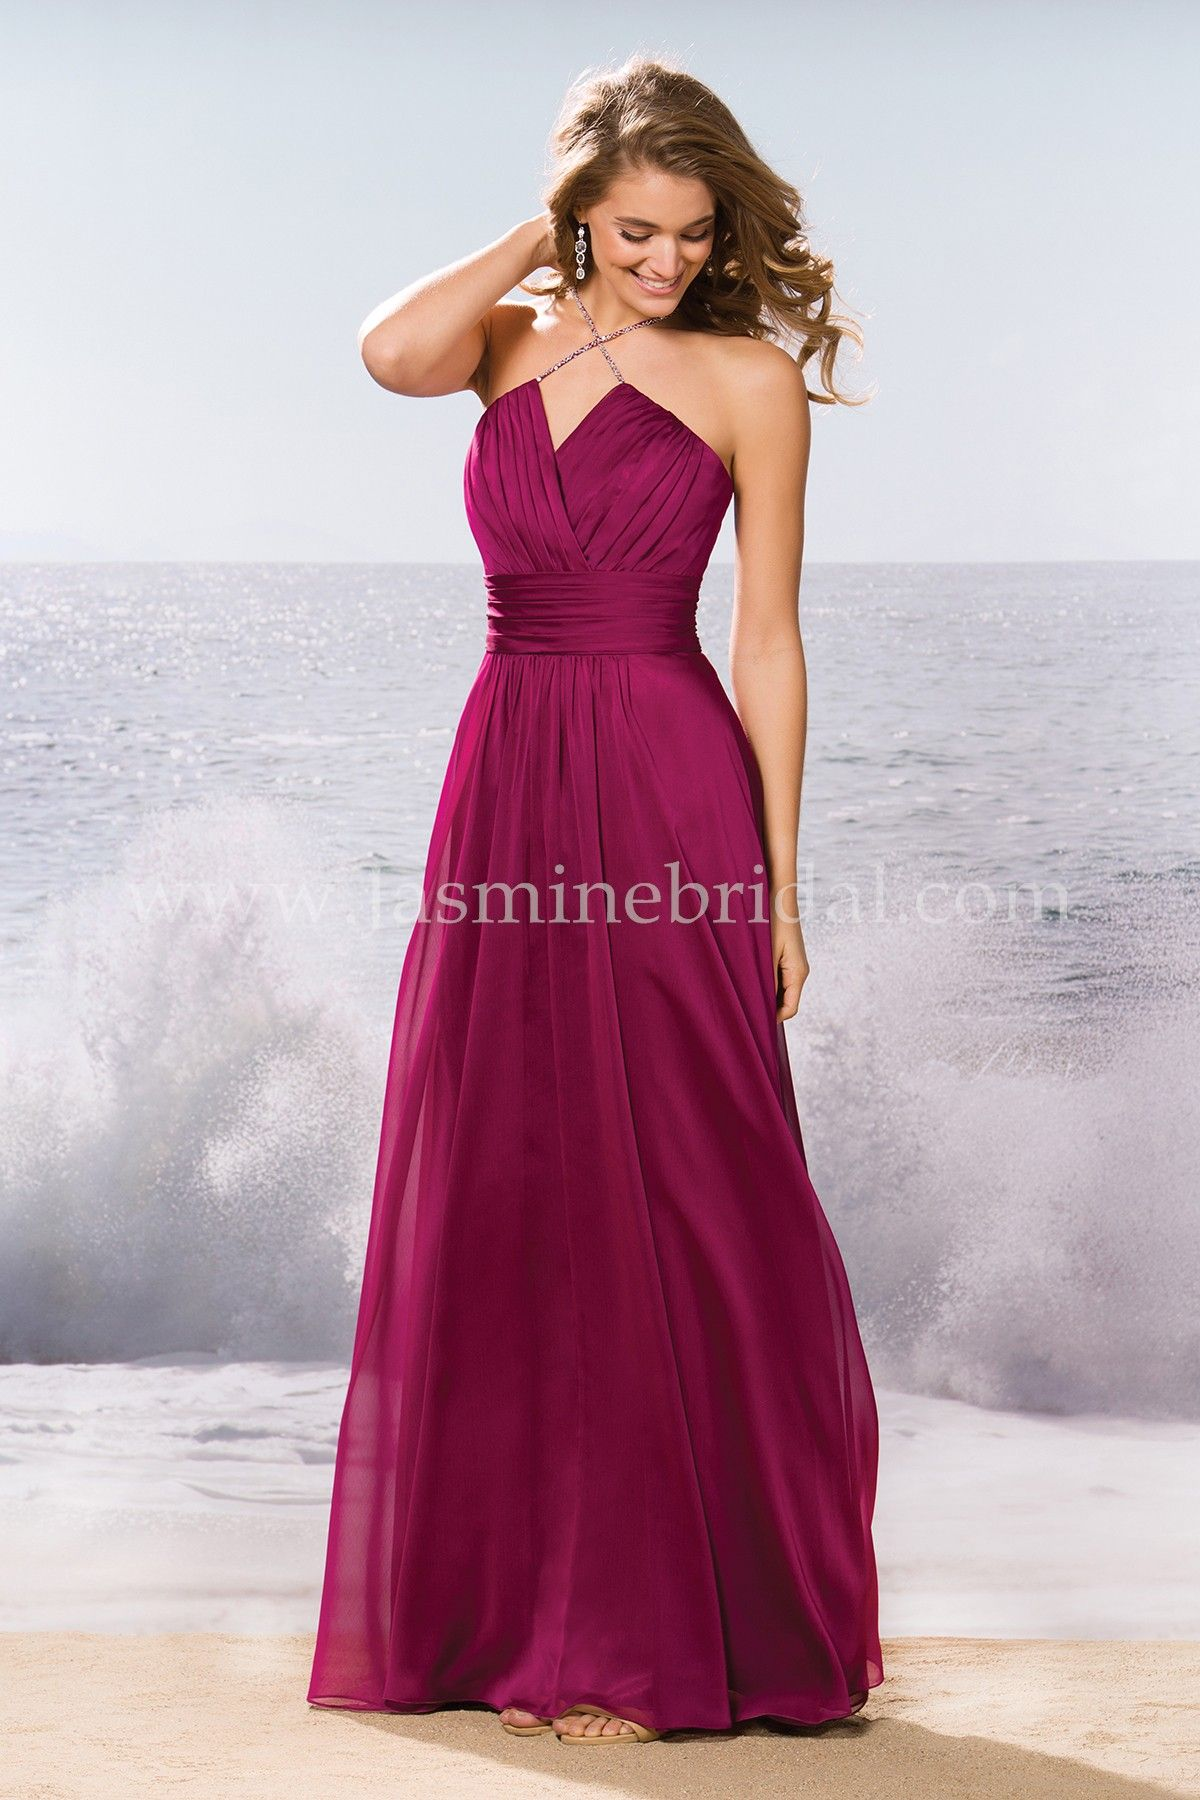 66c75bdc91ef Jasmine Bridal Bridesmaid Dress Belsoie Style L174058 in Scarlet    A  fashionable choice for your girls